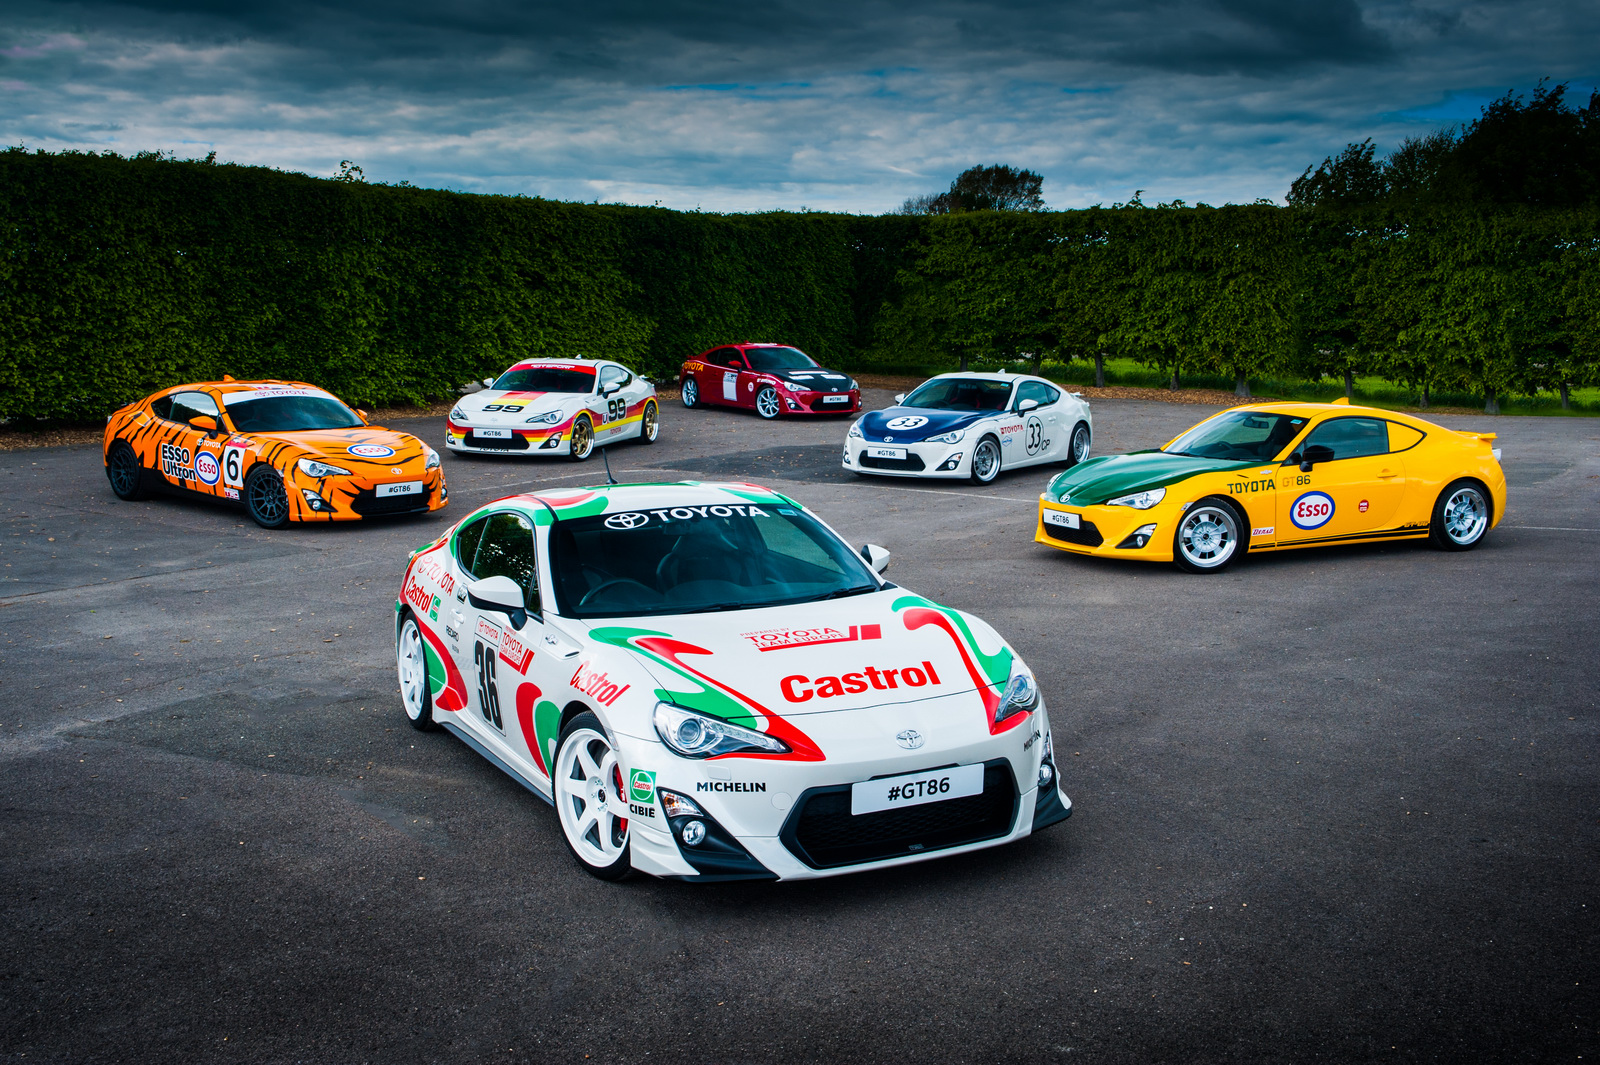 Des Toyota GT86 en robes d'époque - Photo n°1